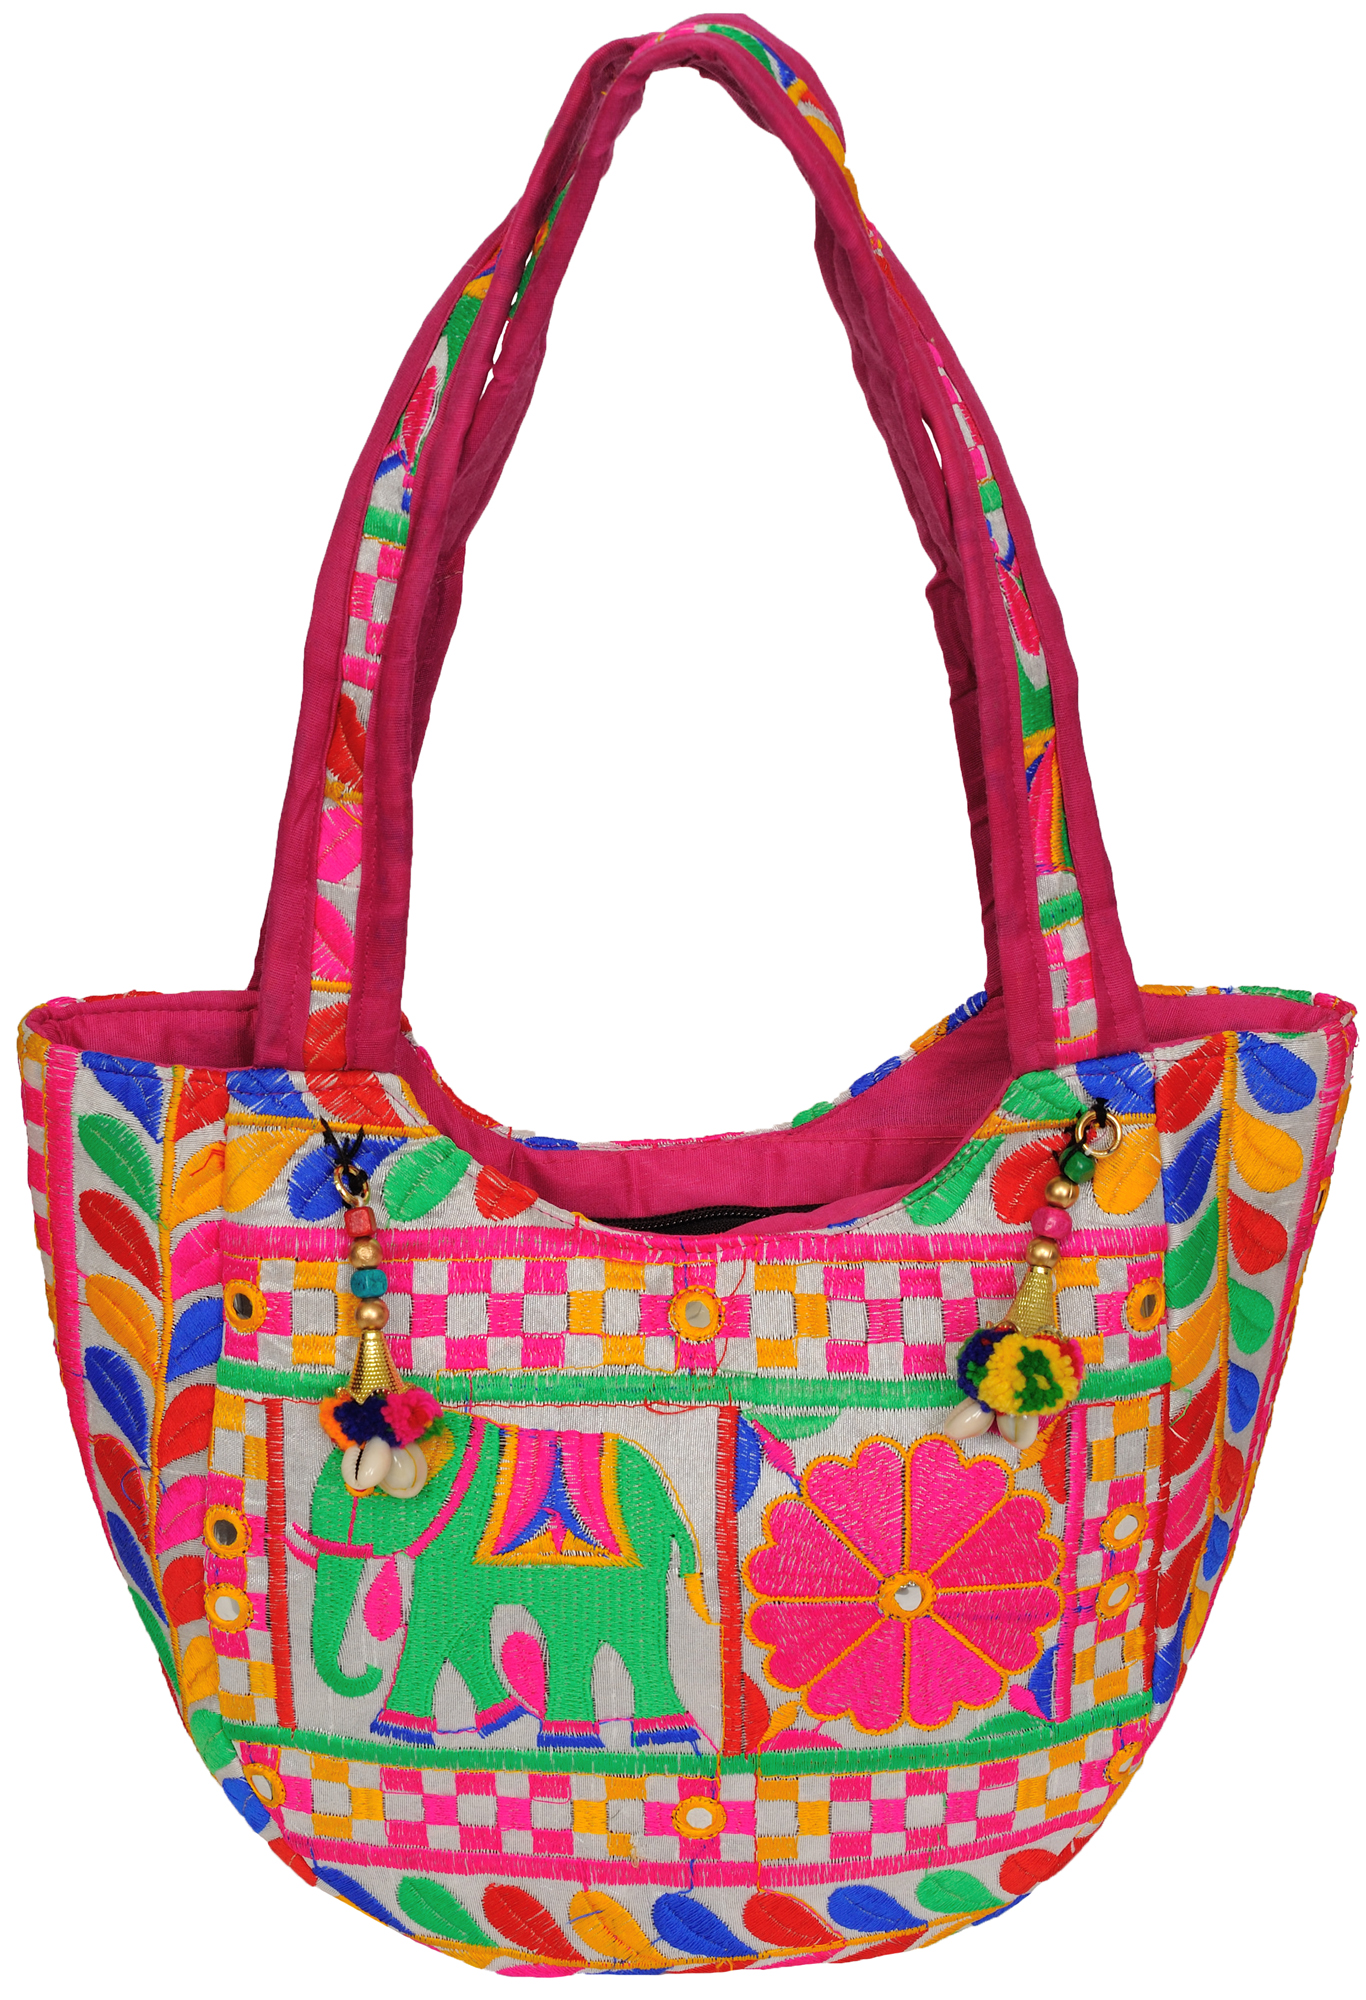 Shoulder bag from kutch with embroidery in multicolor thread